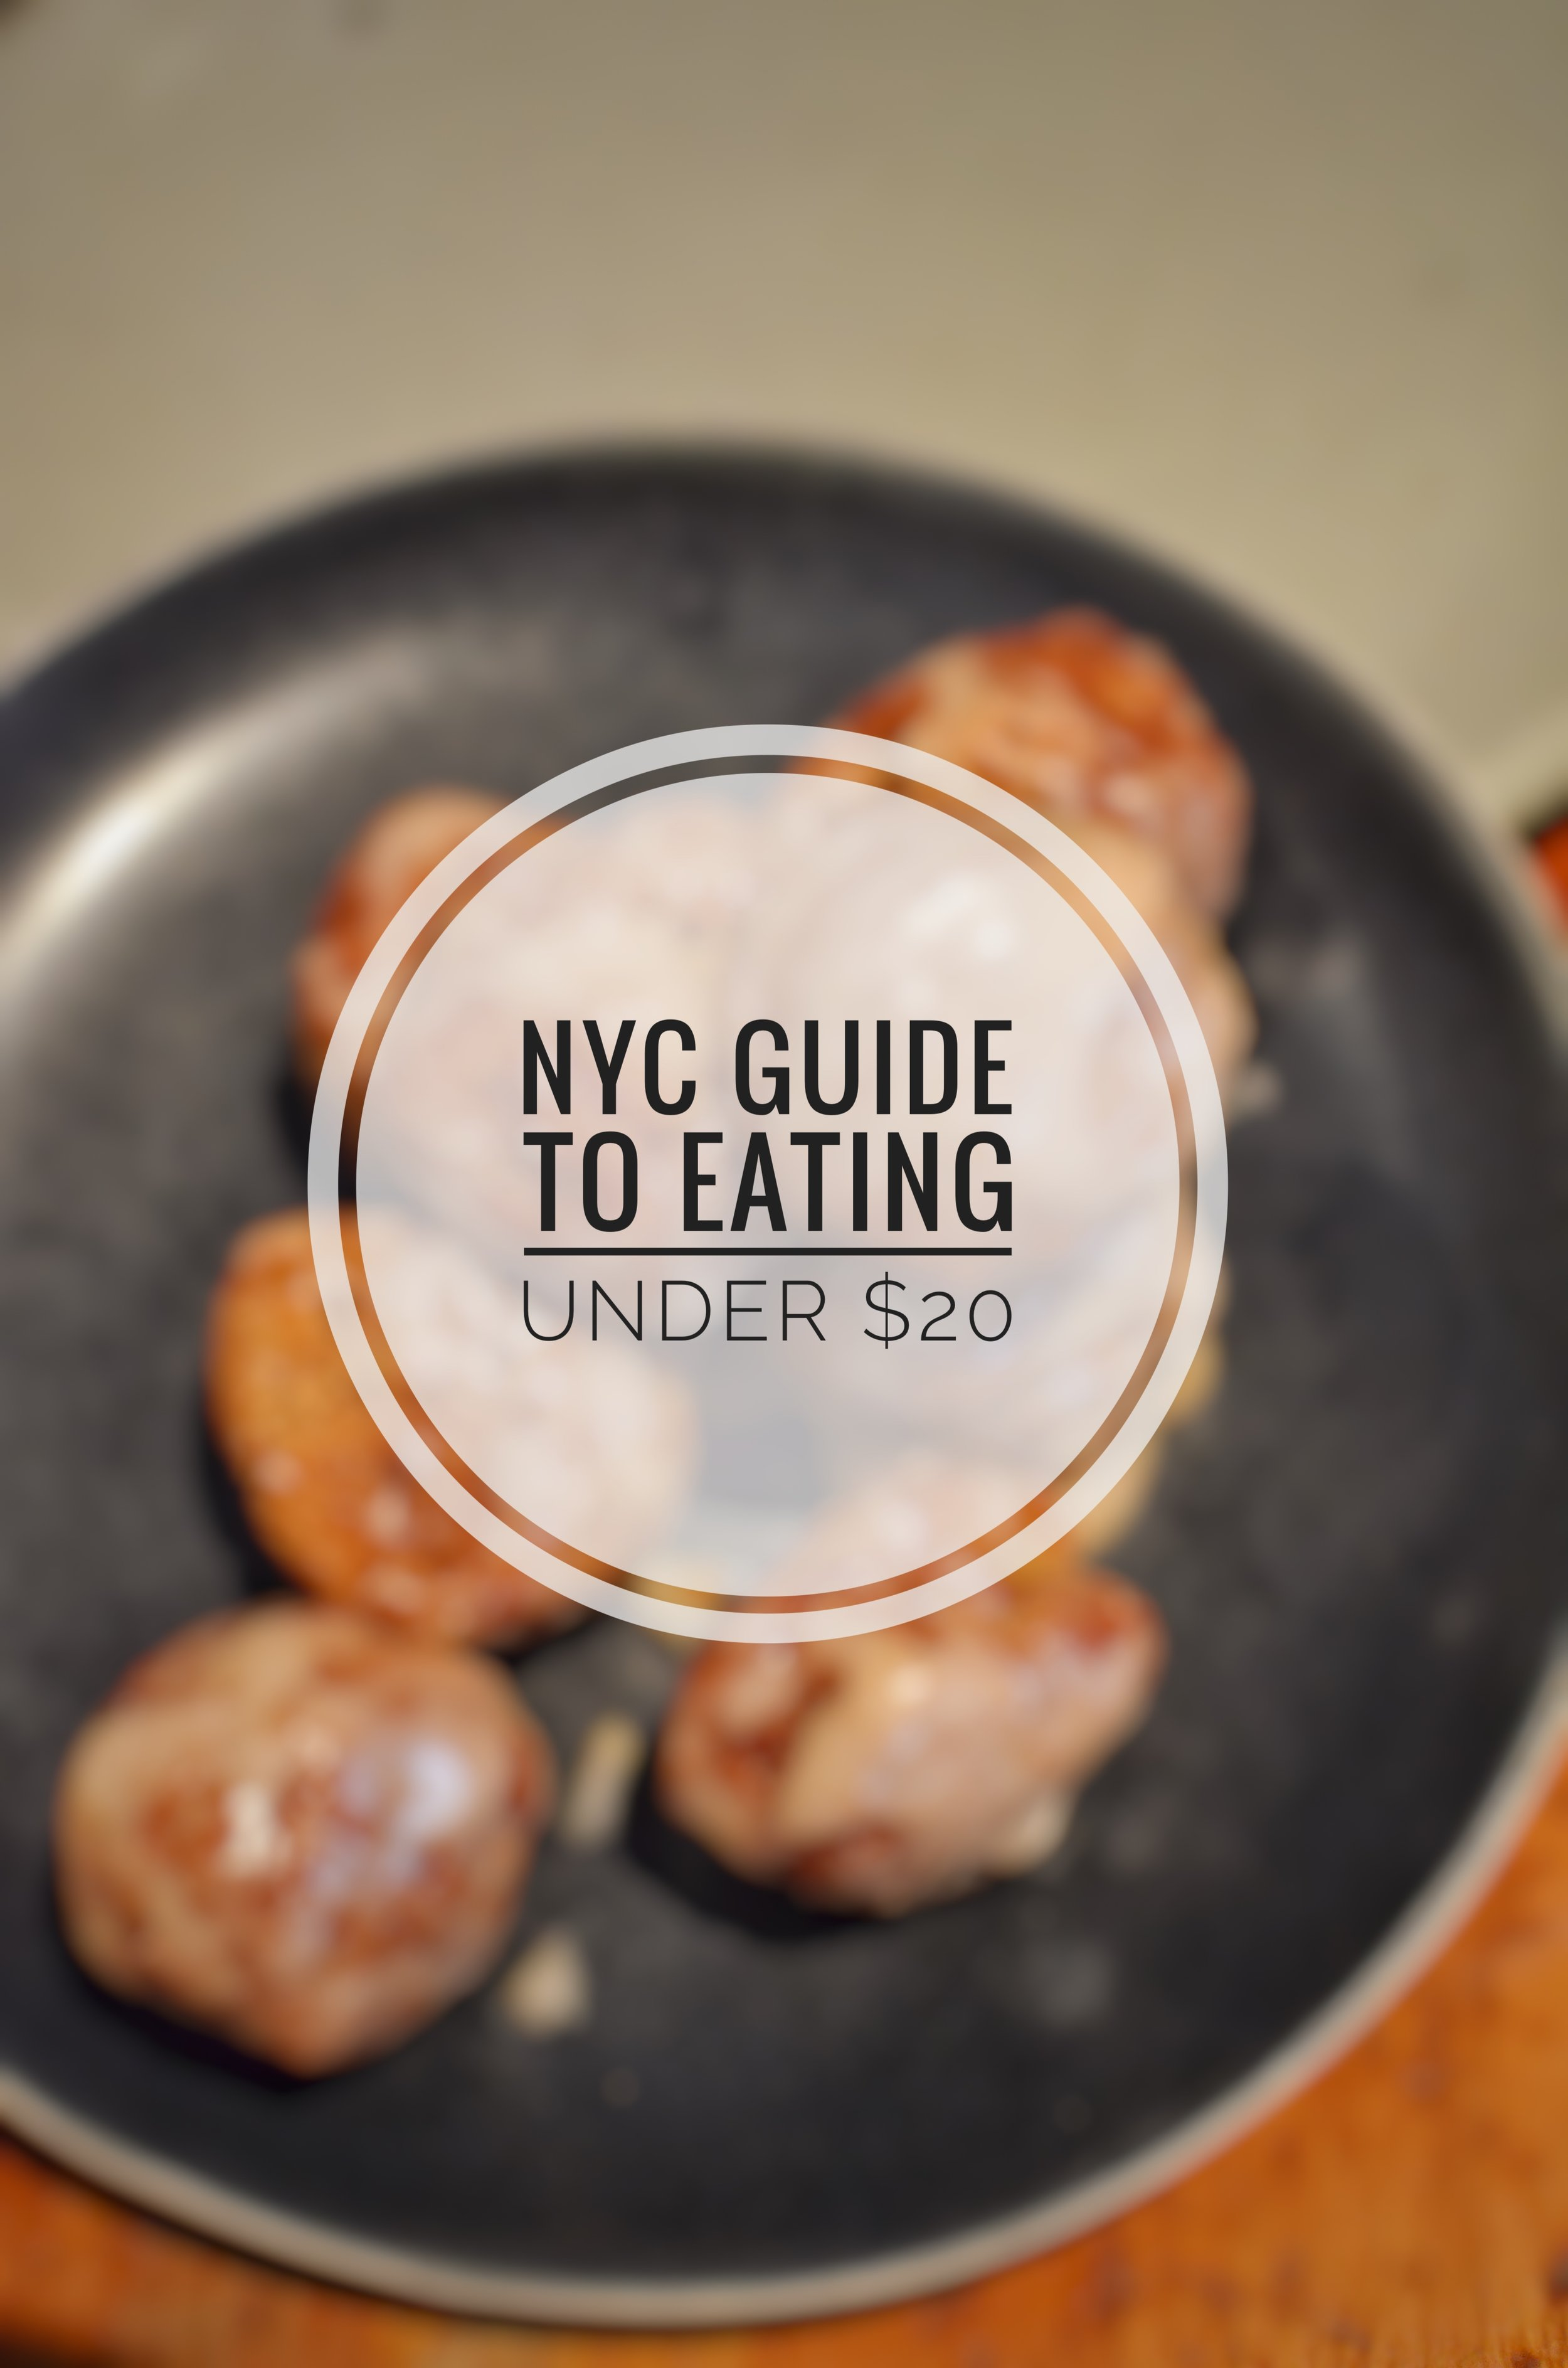 Yes you can eat for under $20 in NYC — Meet on Perry